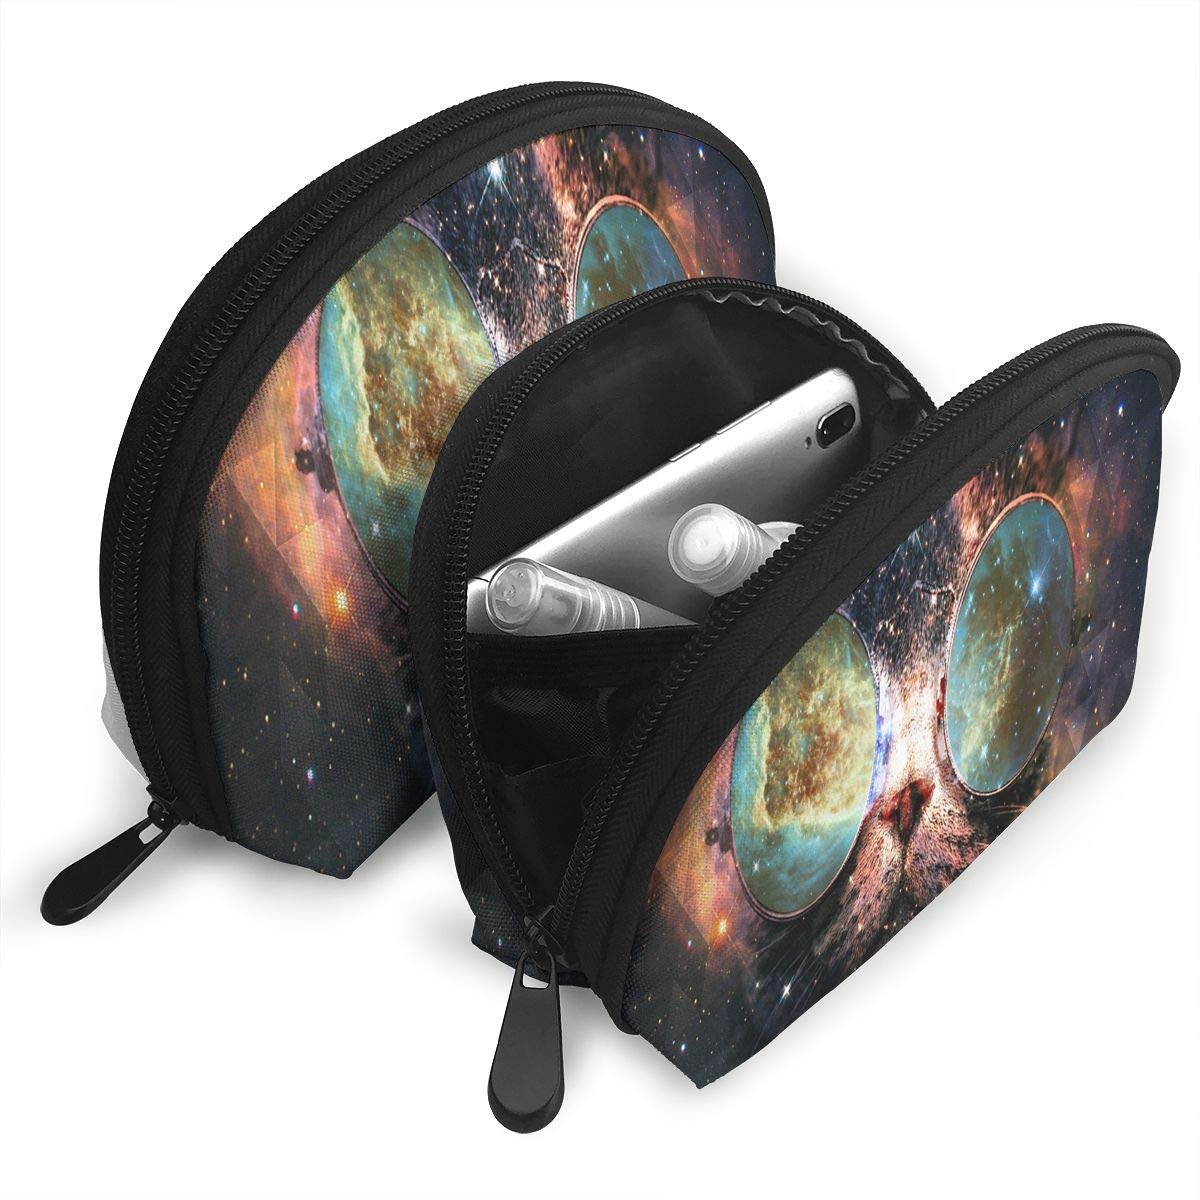 Amazon.com : Makeup Bag Illustration Cat Galaxy Planet Glasses Portable Shell Makeup Case For Mother Halloween Gift 2 Pack : Beauty